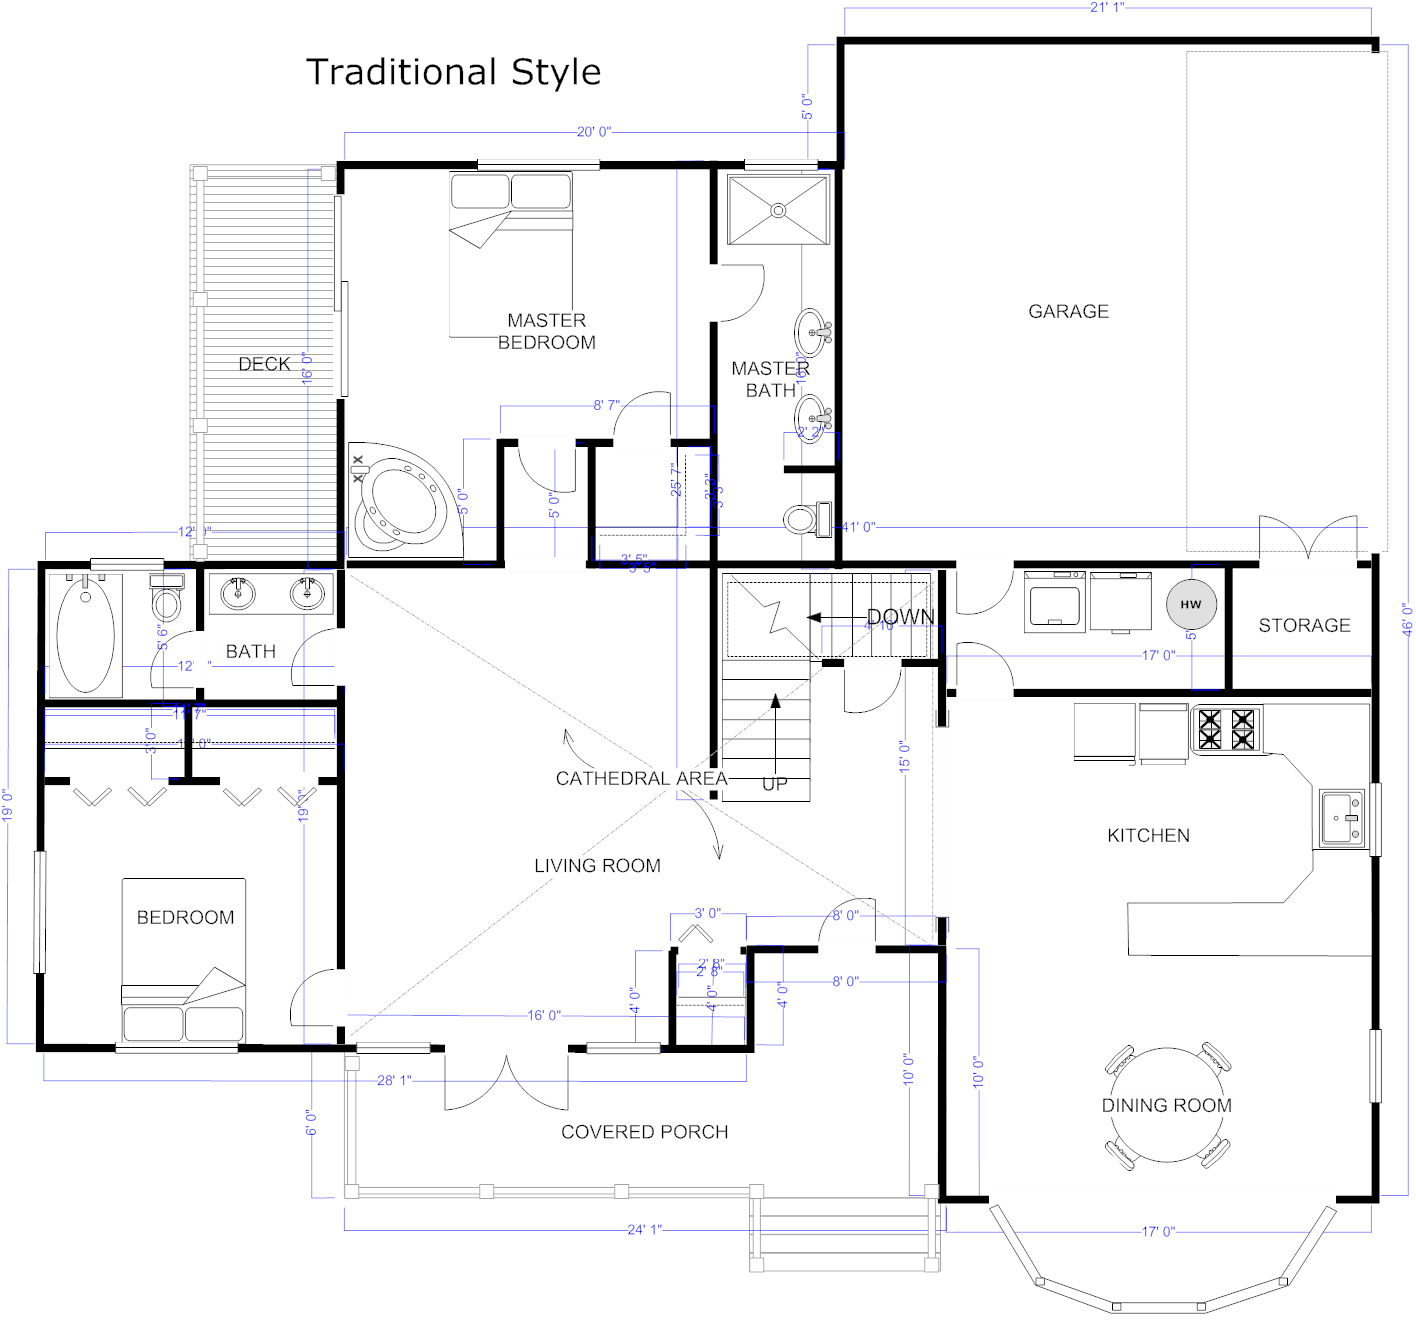 Architecture Software Free Download Online App - design your own home app